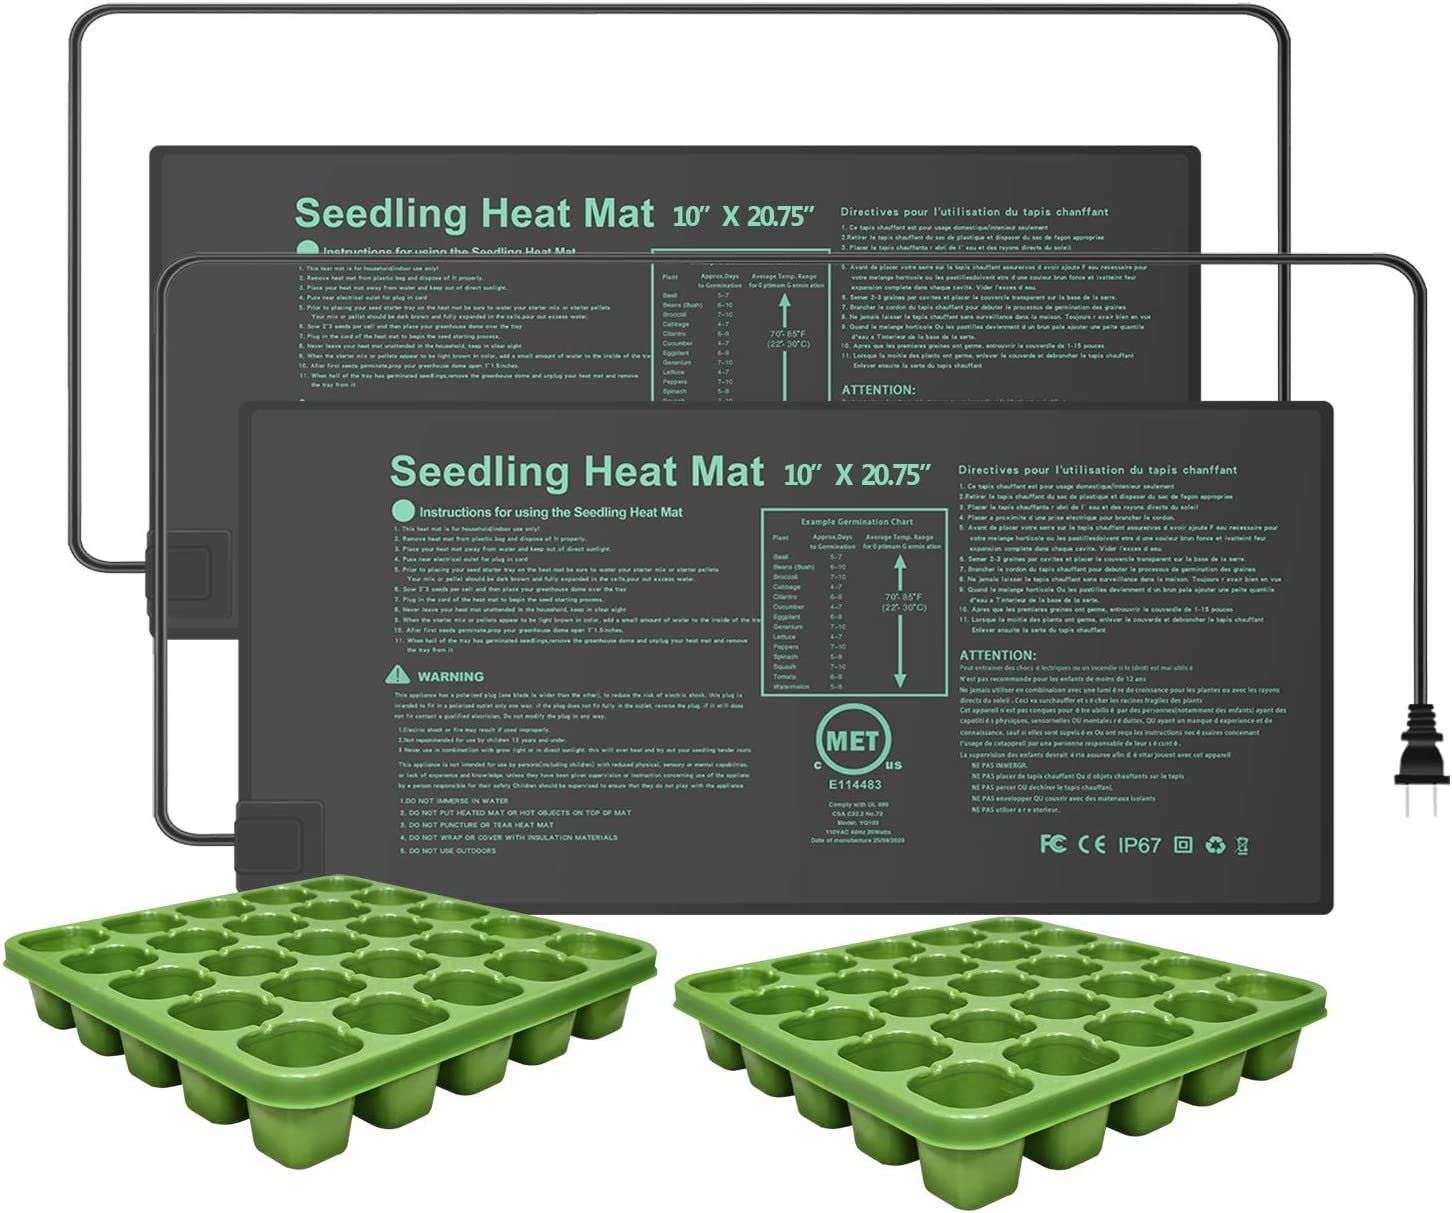 YOUSHENGER 10x20.75 2 Pack Seedling Heat Mat,MET Certified Waterproof Germination Station with 2pcs Seed Starter Tray Warm Hydroponic Heating Pad for Indoor Home Gardening Plant Germination kit